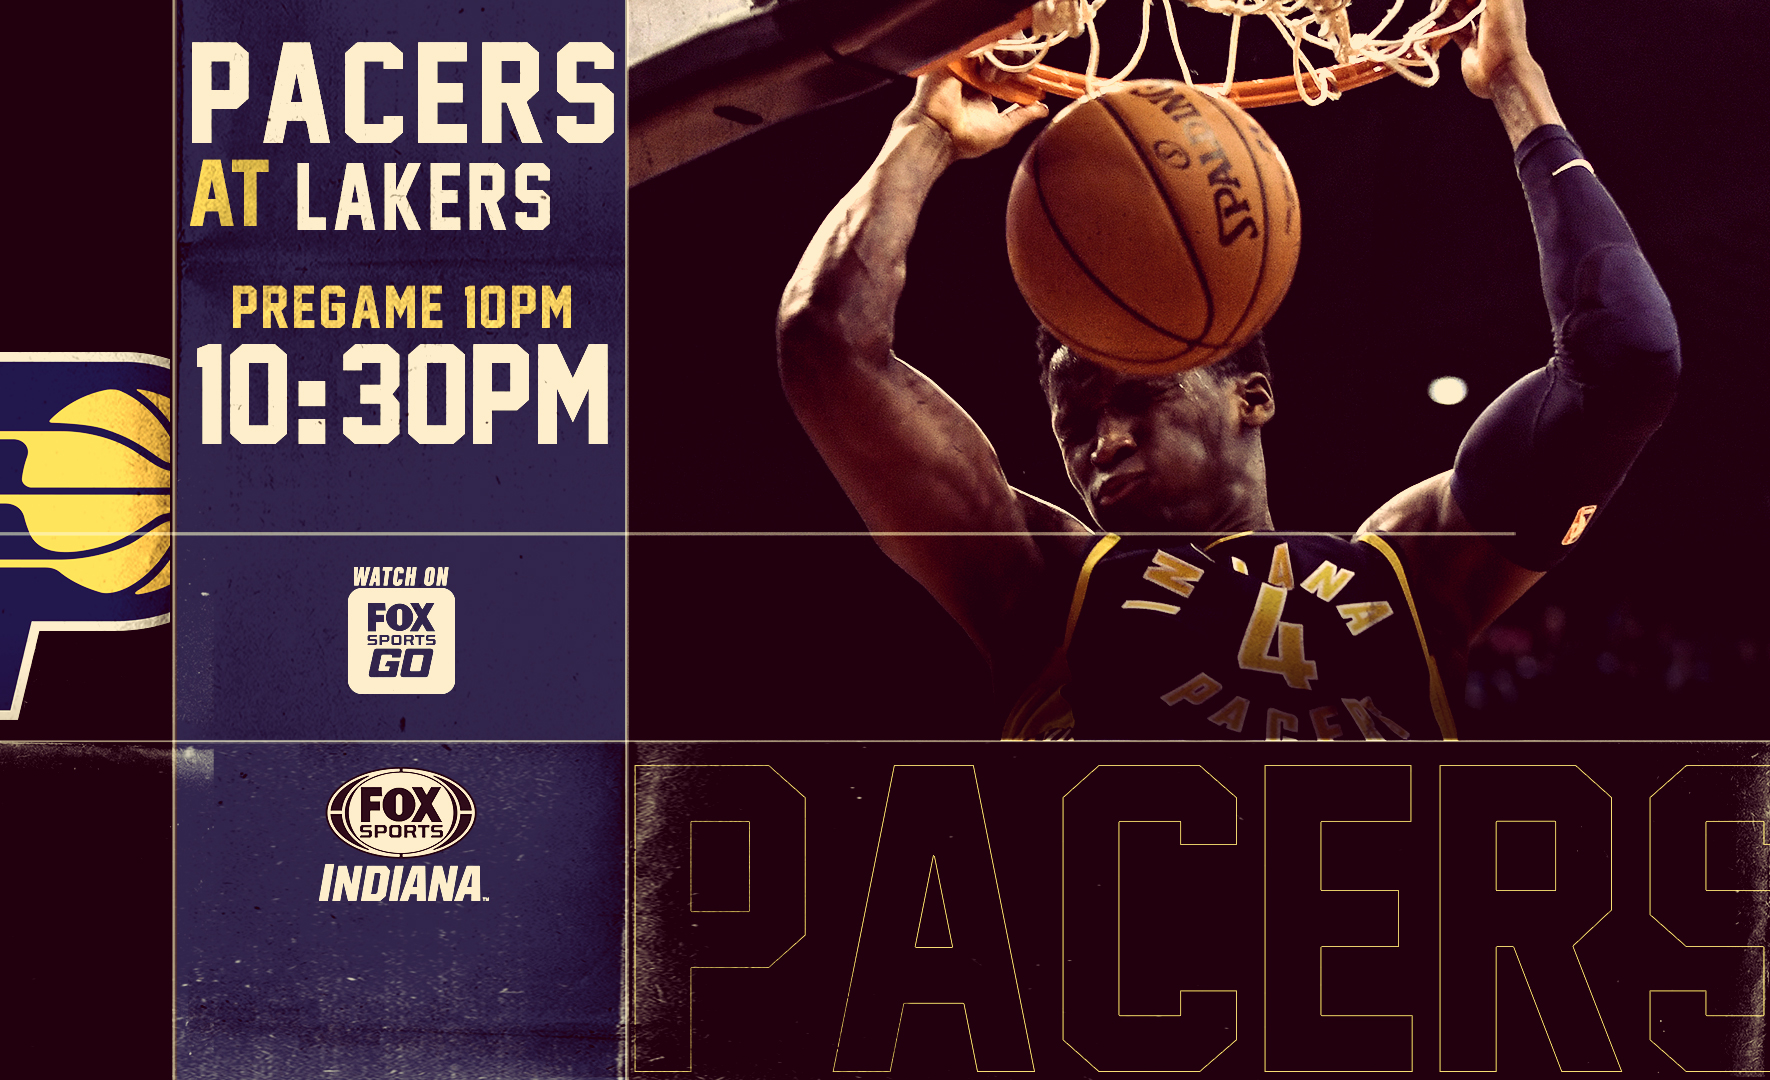 Pacers-FSI-tune-in-011918-Oladipo